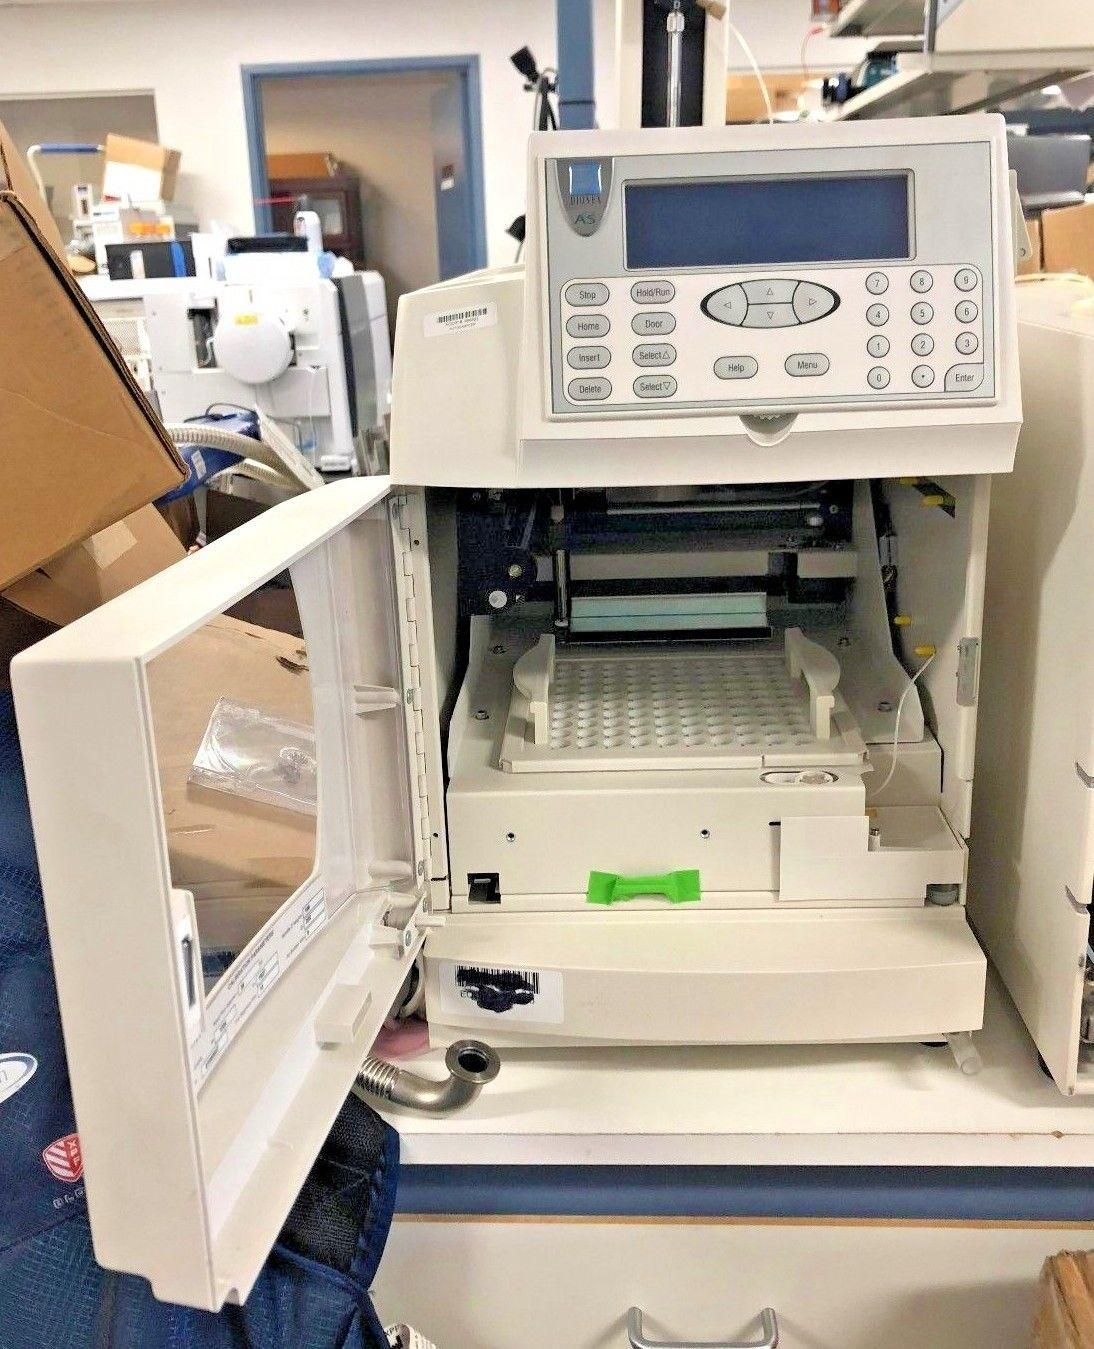 Dionex ICS Series 3000 Ion Chromatography System Chameleon 7 With Computer